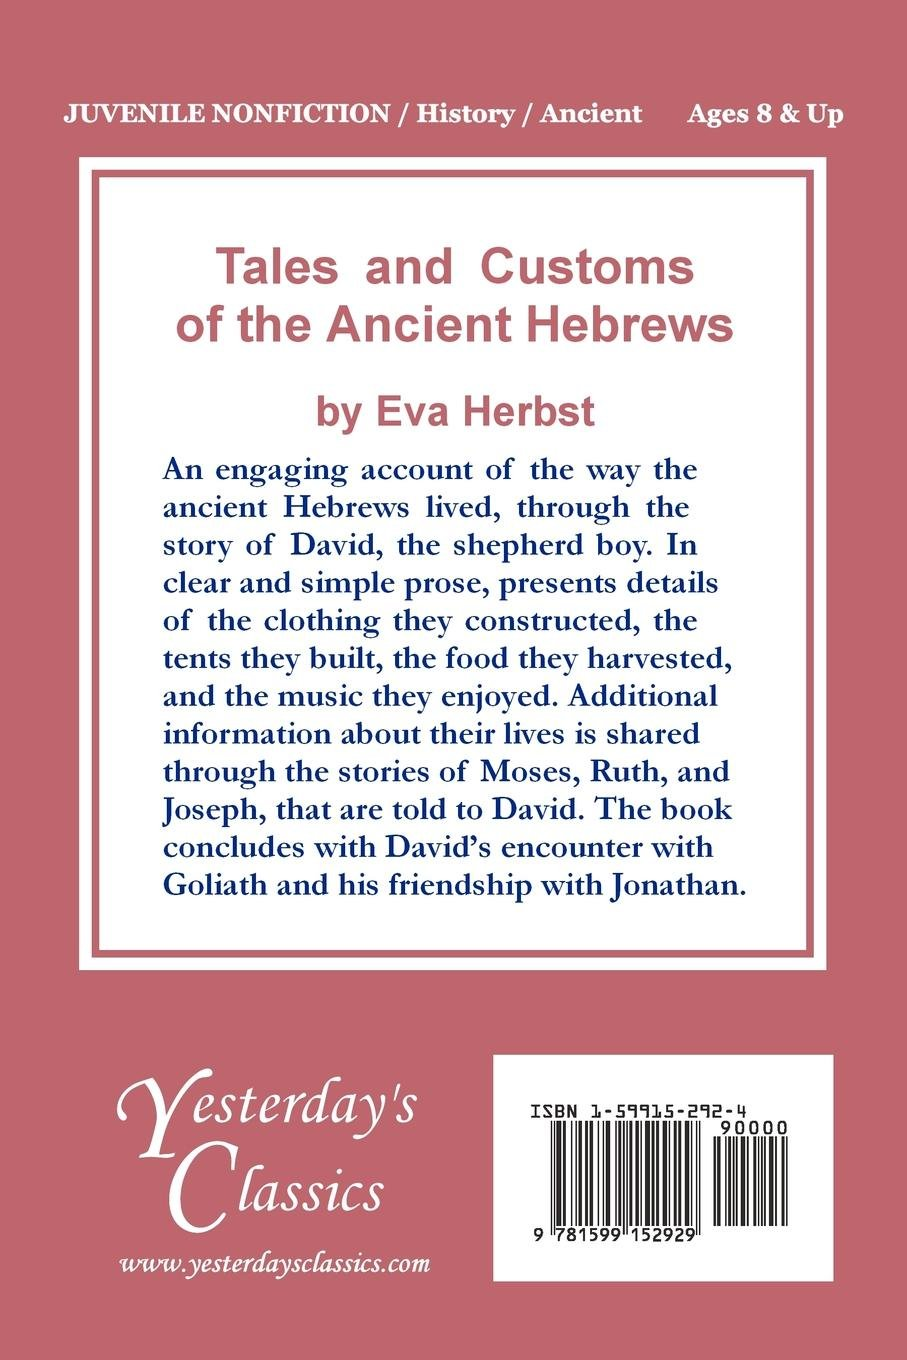 Tales and Customs of the Ancient Hebrews